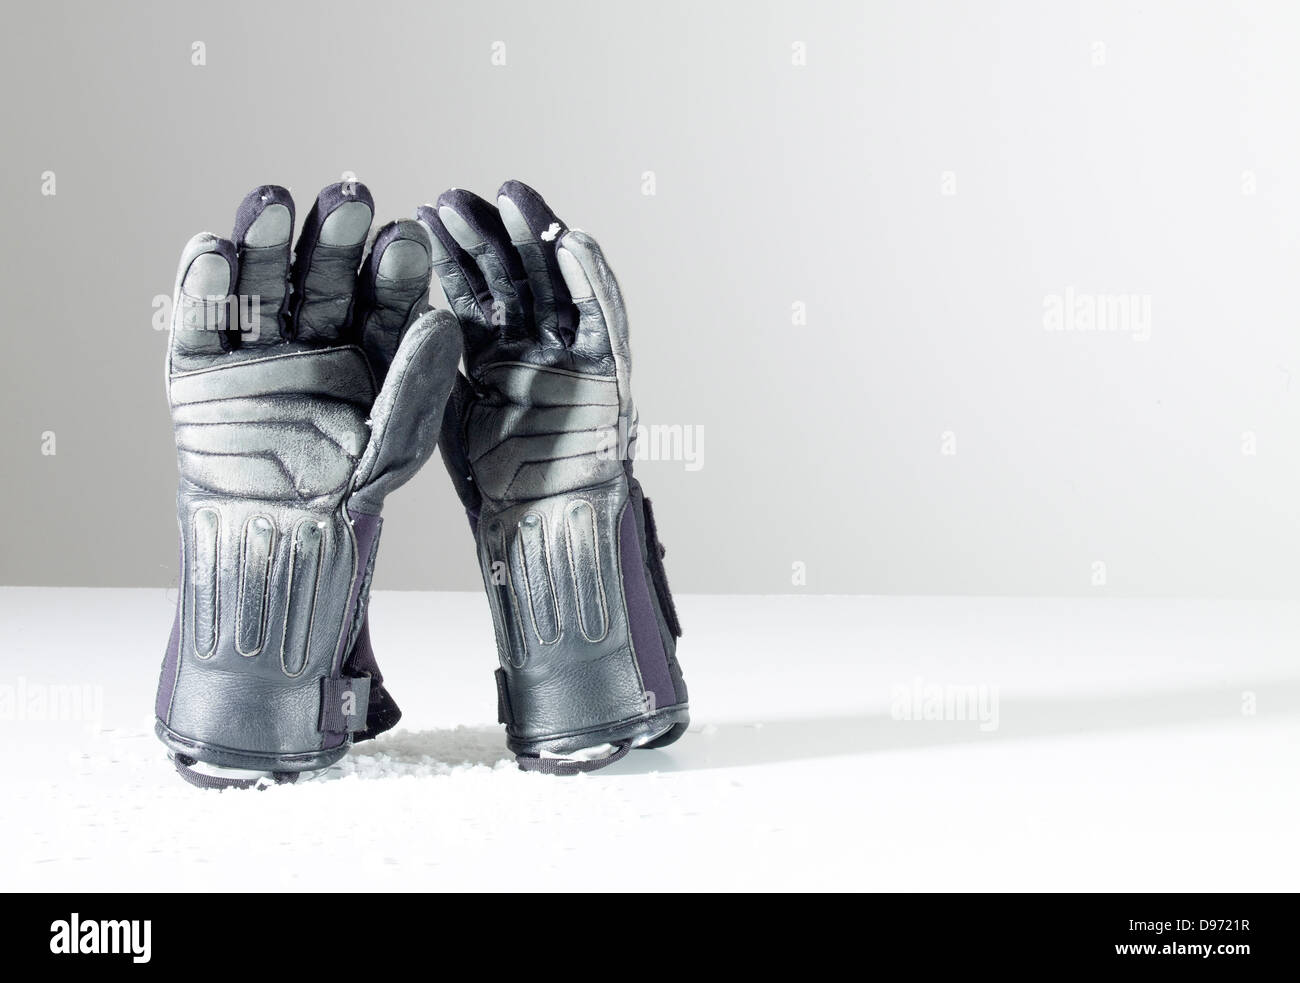 Gloves symbol for winter holidays Stock Photo